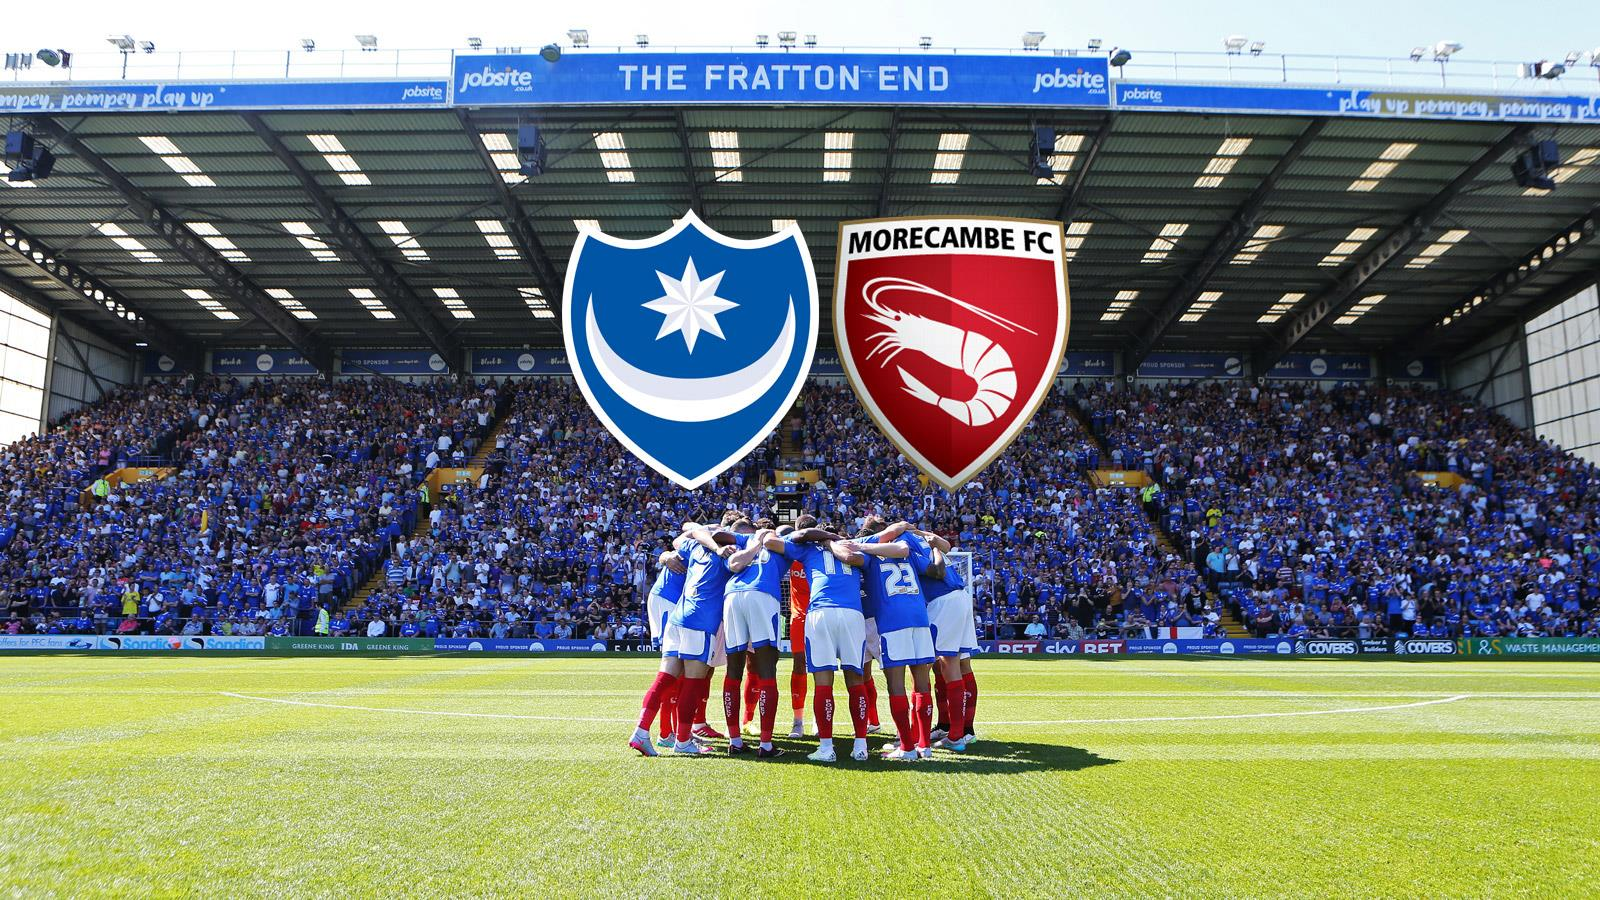 MATCH PREVIEW: POMPEY v MORECAMBE - News - Portsmouth